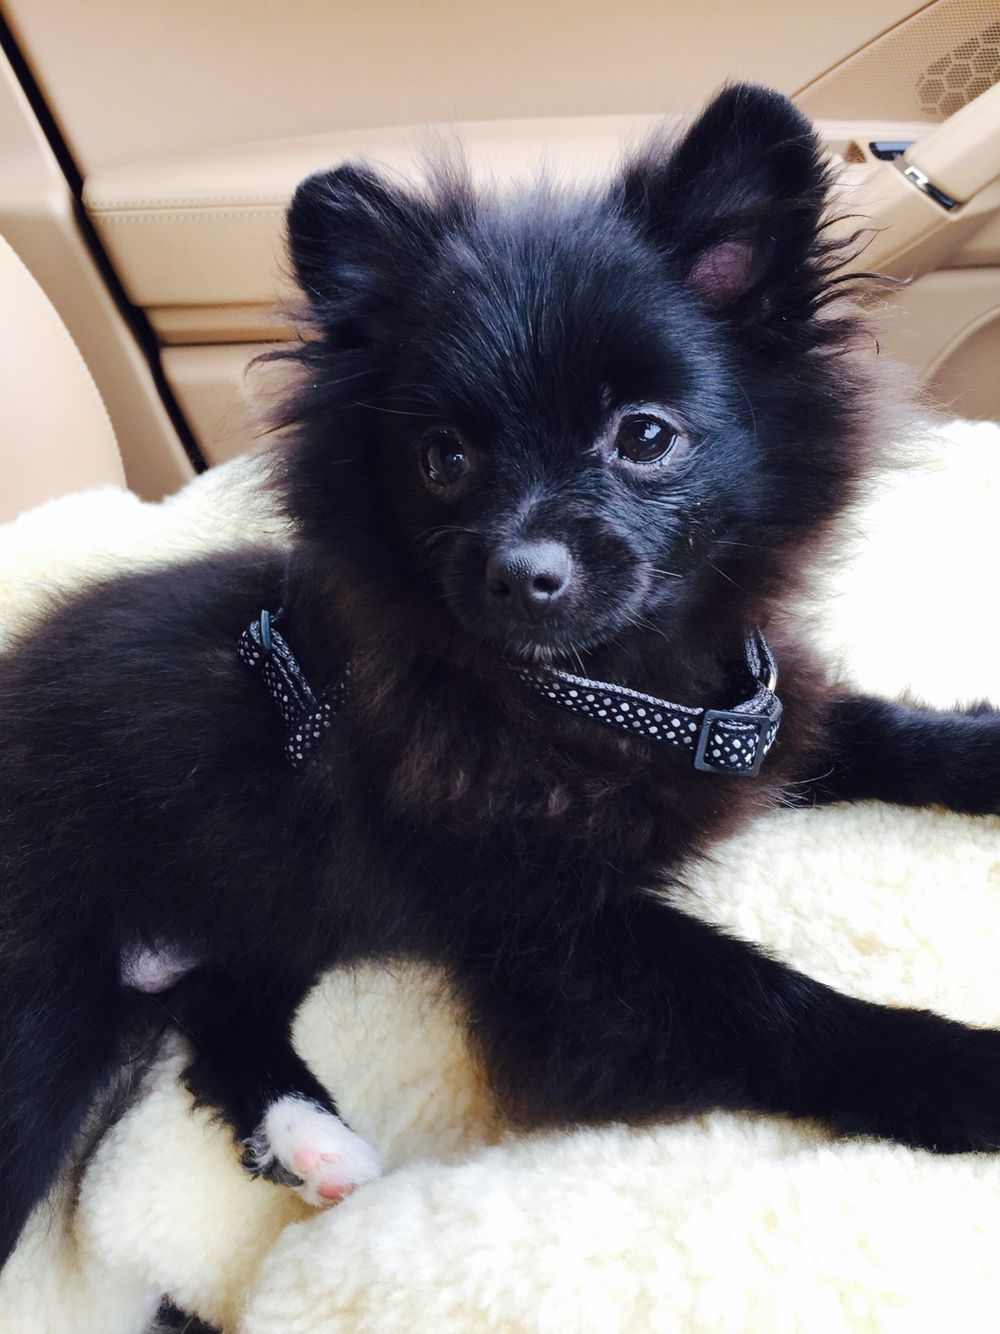 Black Pomeranian Cute Puppy Teddy Bear Face 3 Dogs And Puppies